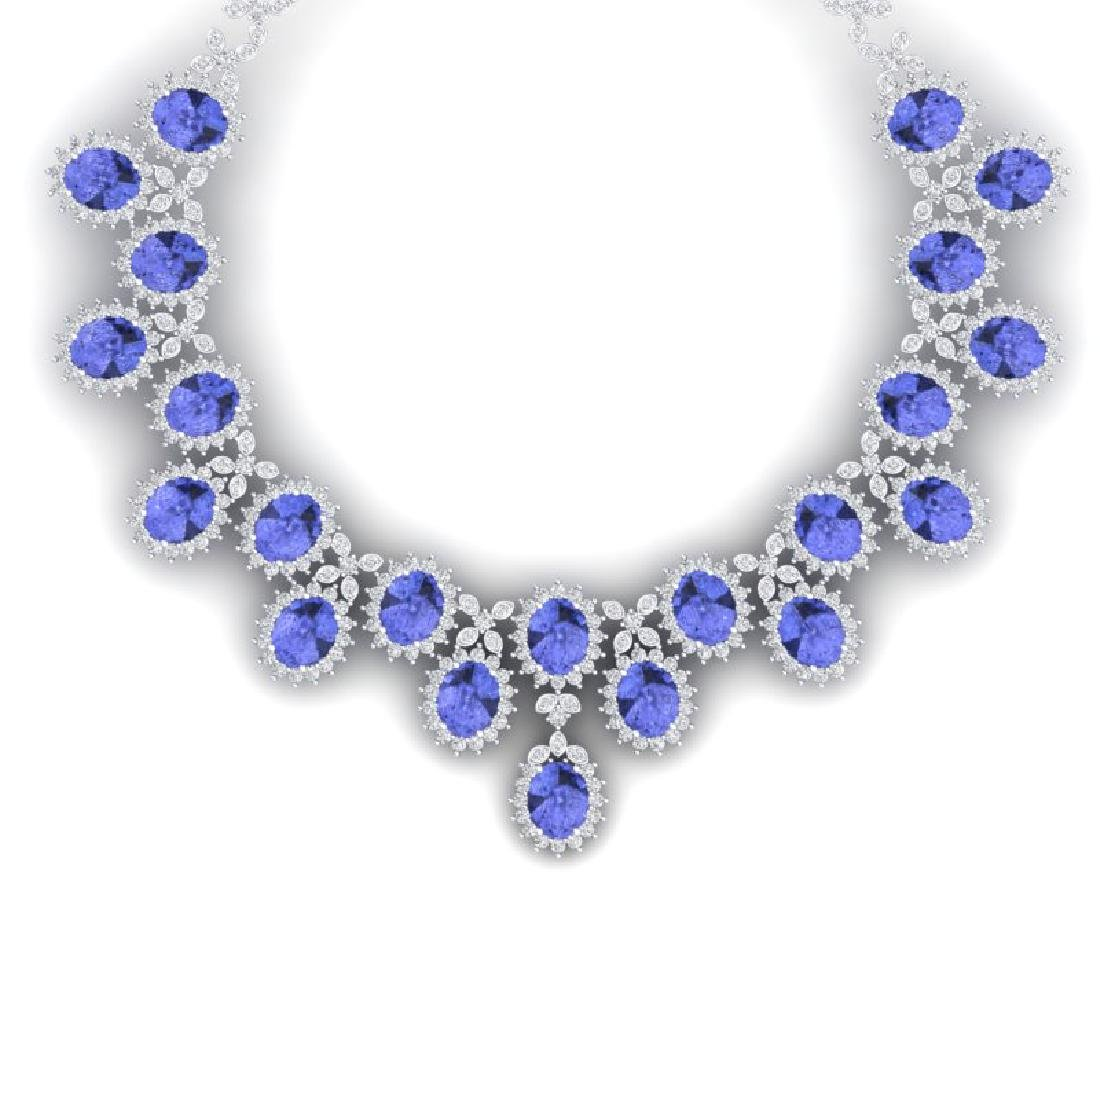 86 CTW Royalty Tanzanite & VS Diamond Necklace 18K